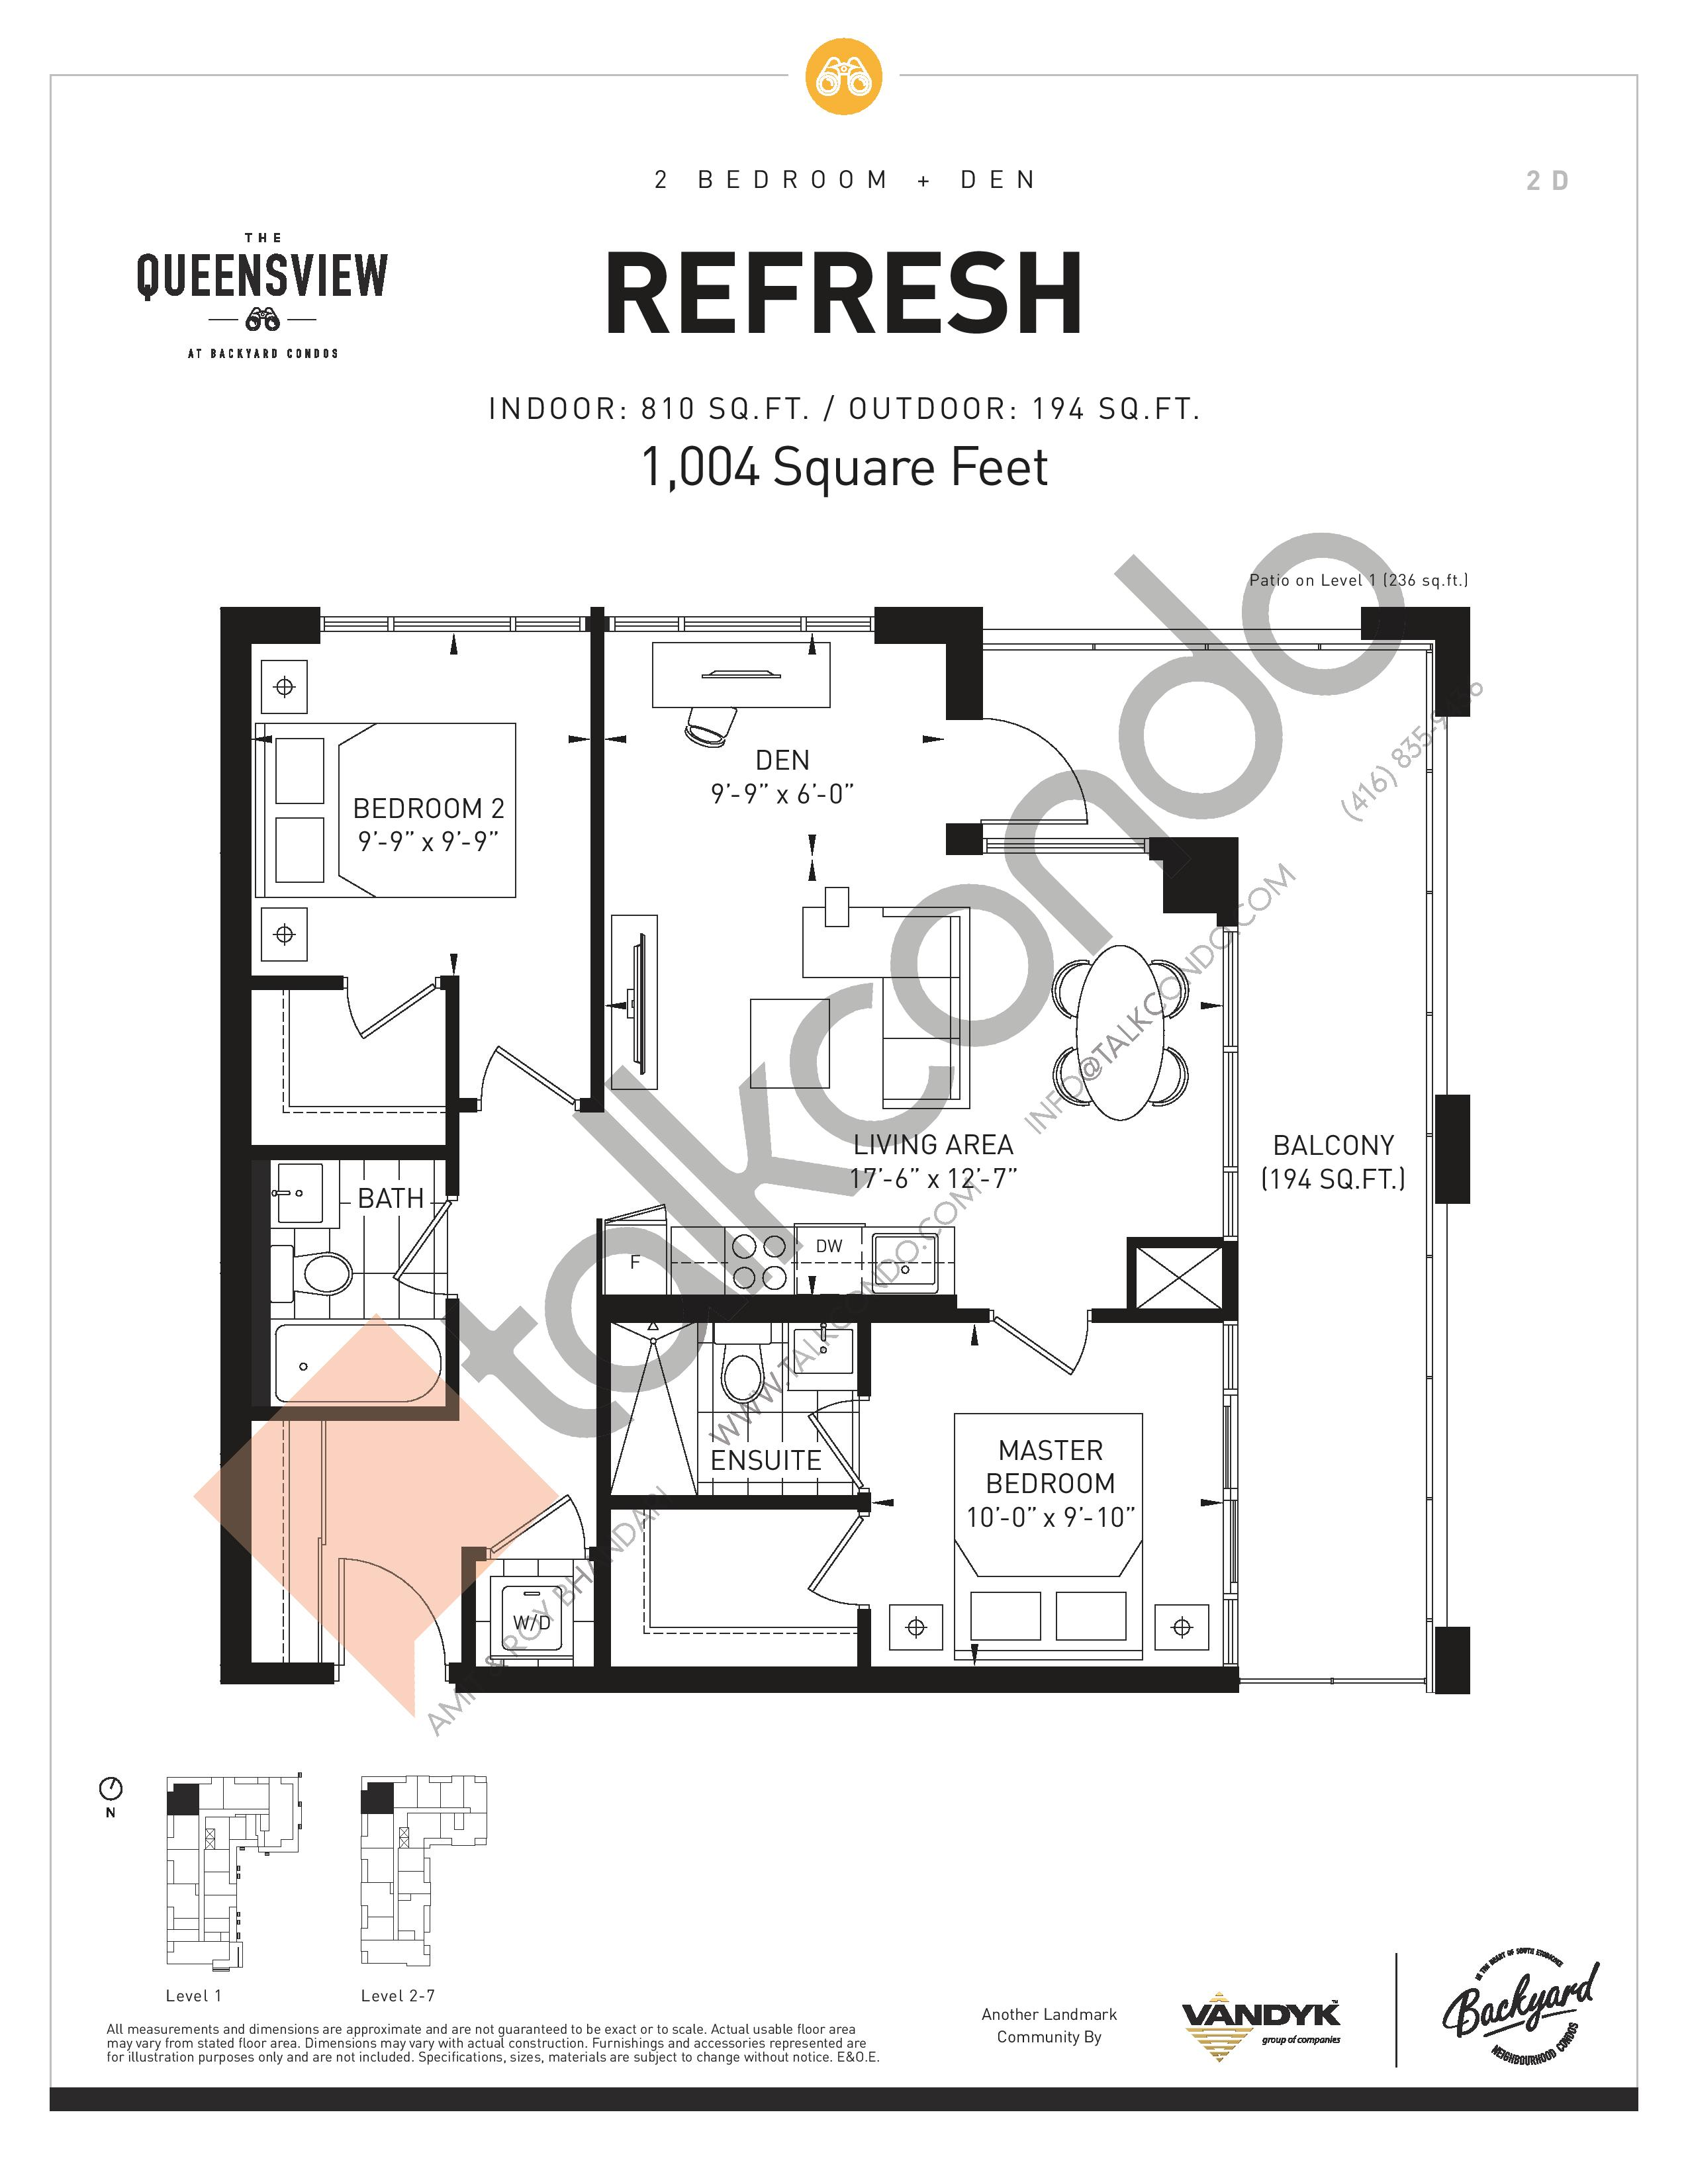 Refresh Floor Plan at The Queensview at Backyard Condos - 810 sq.ft